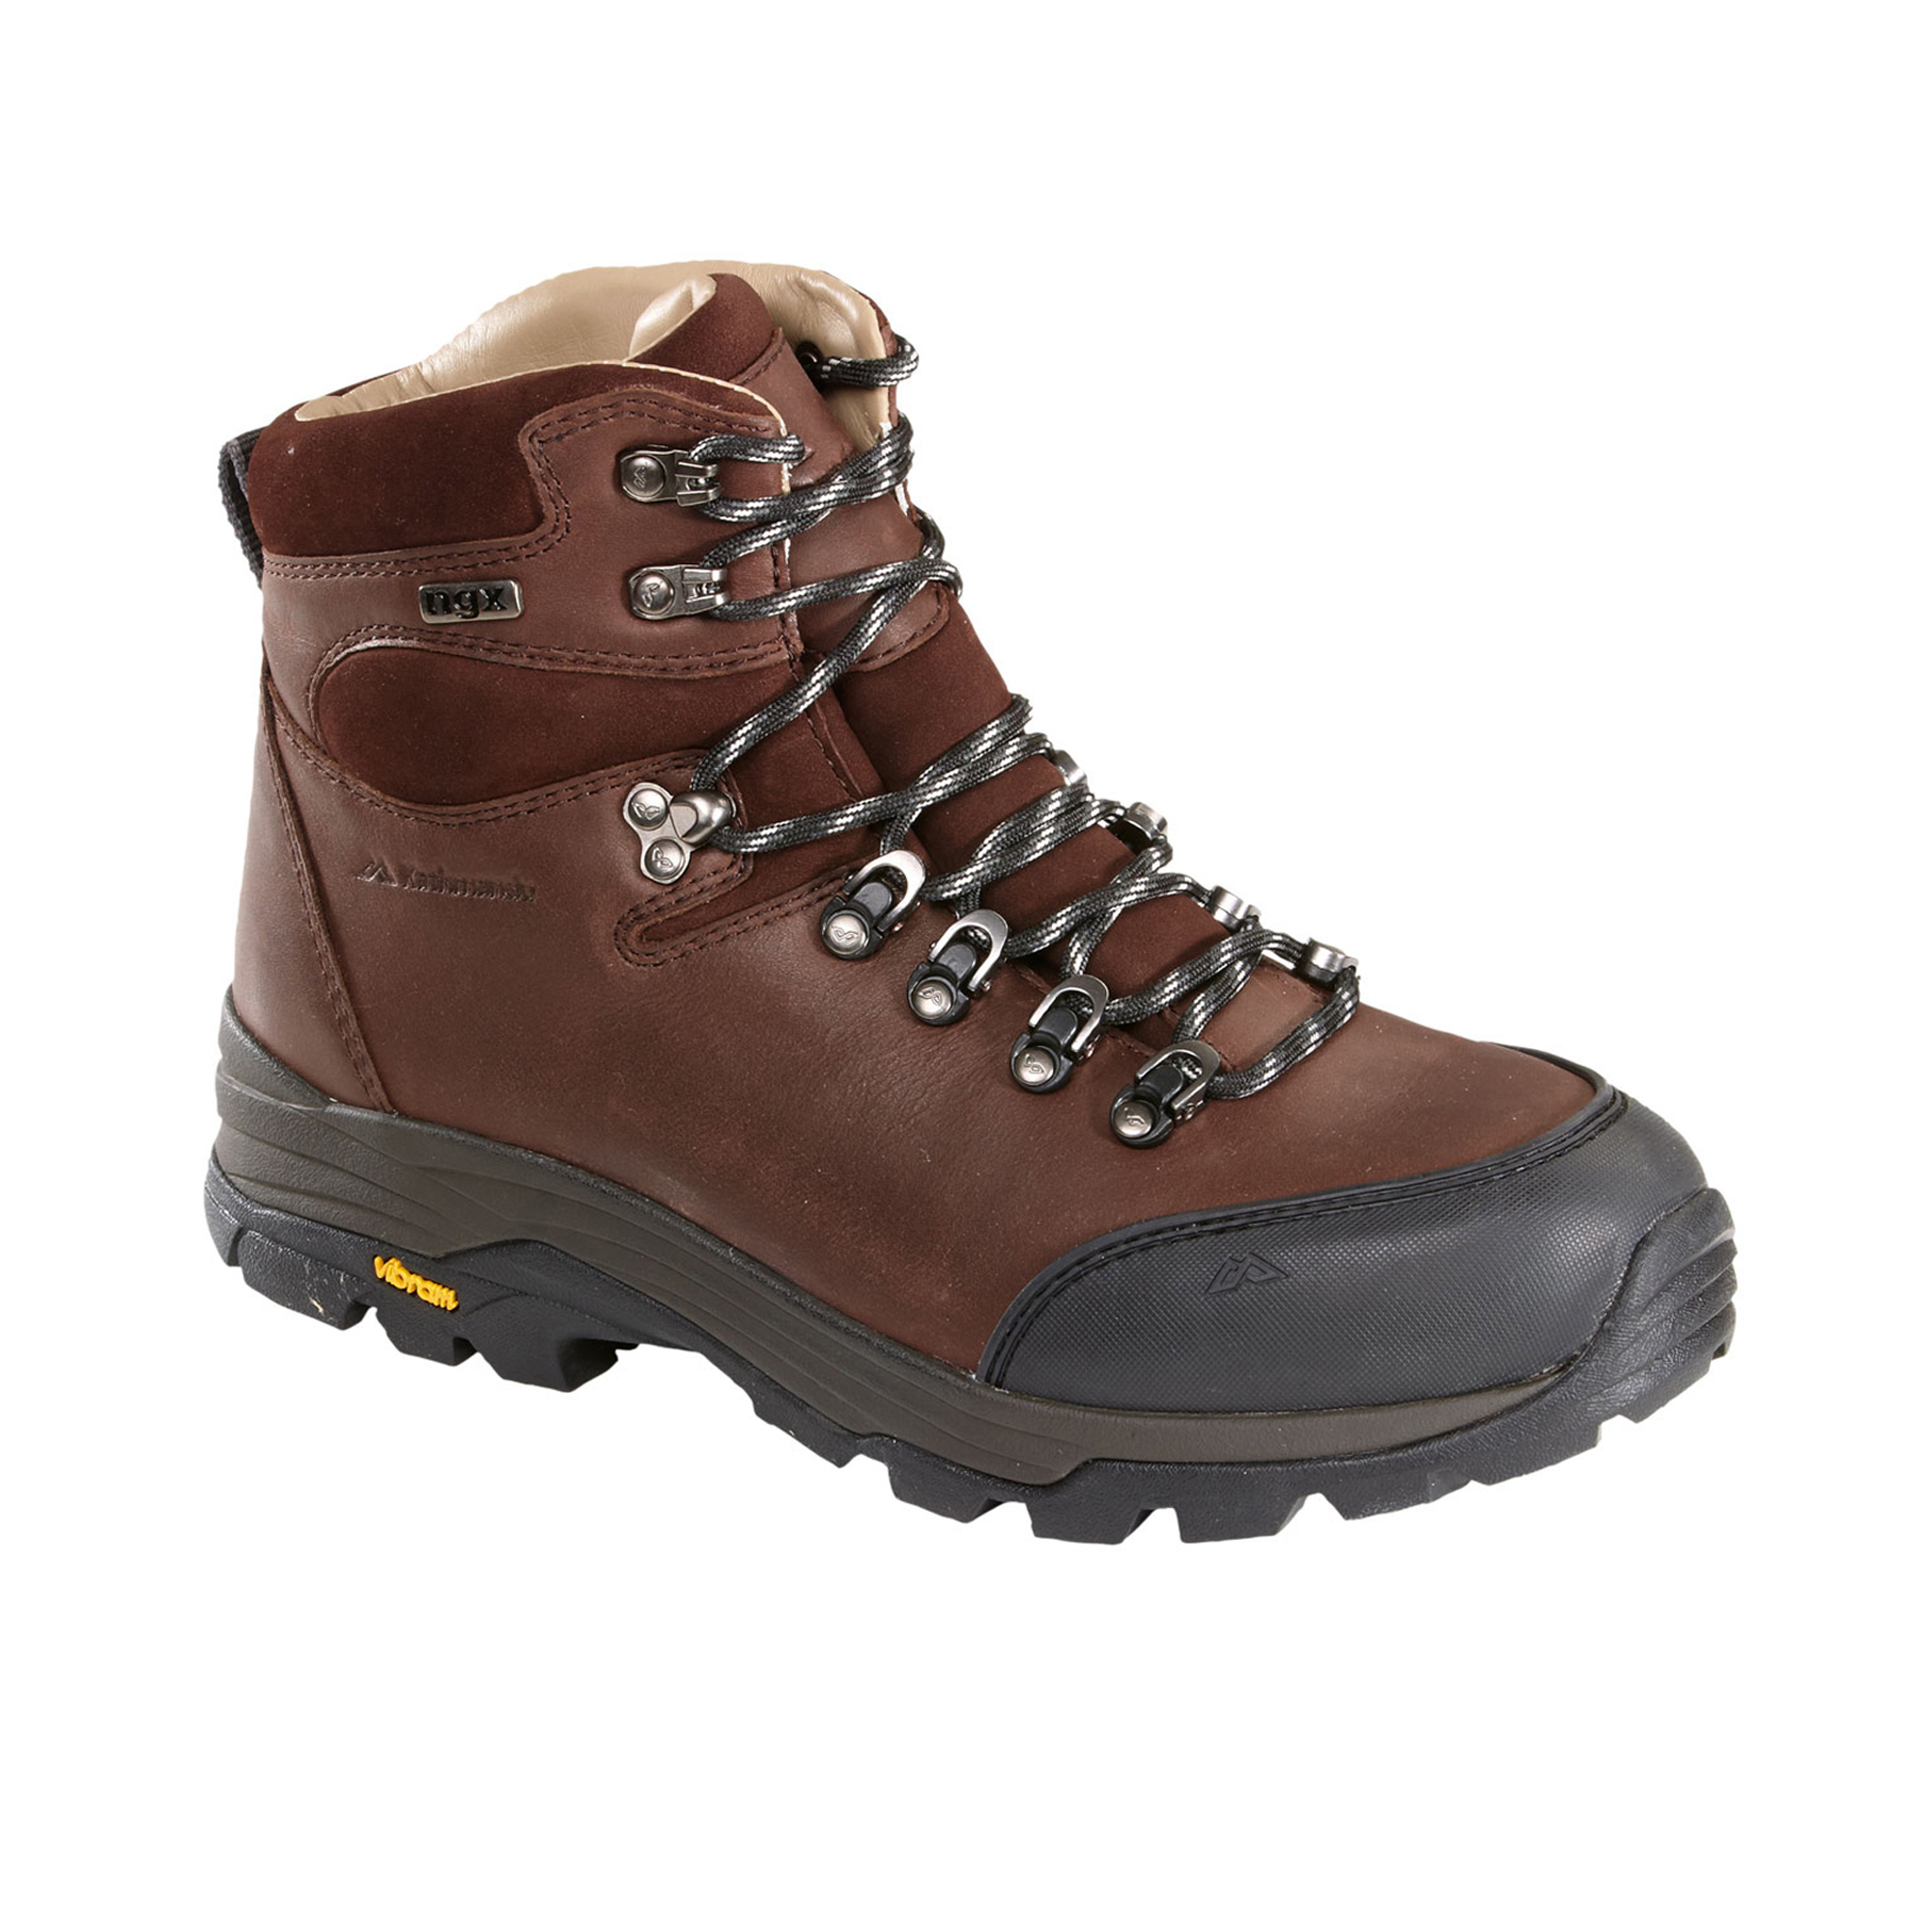 kathmandu tiber mens ngx waterproof leather hiking walking